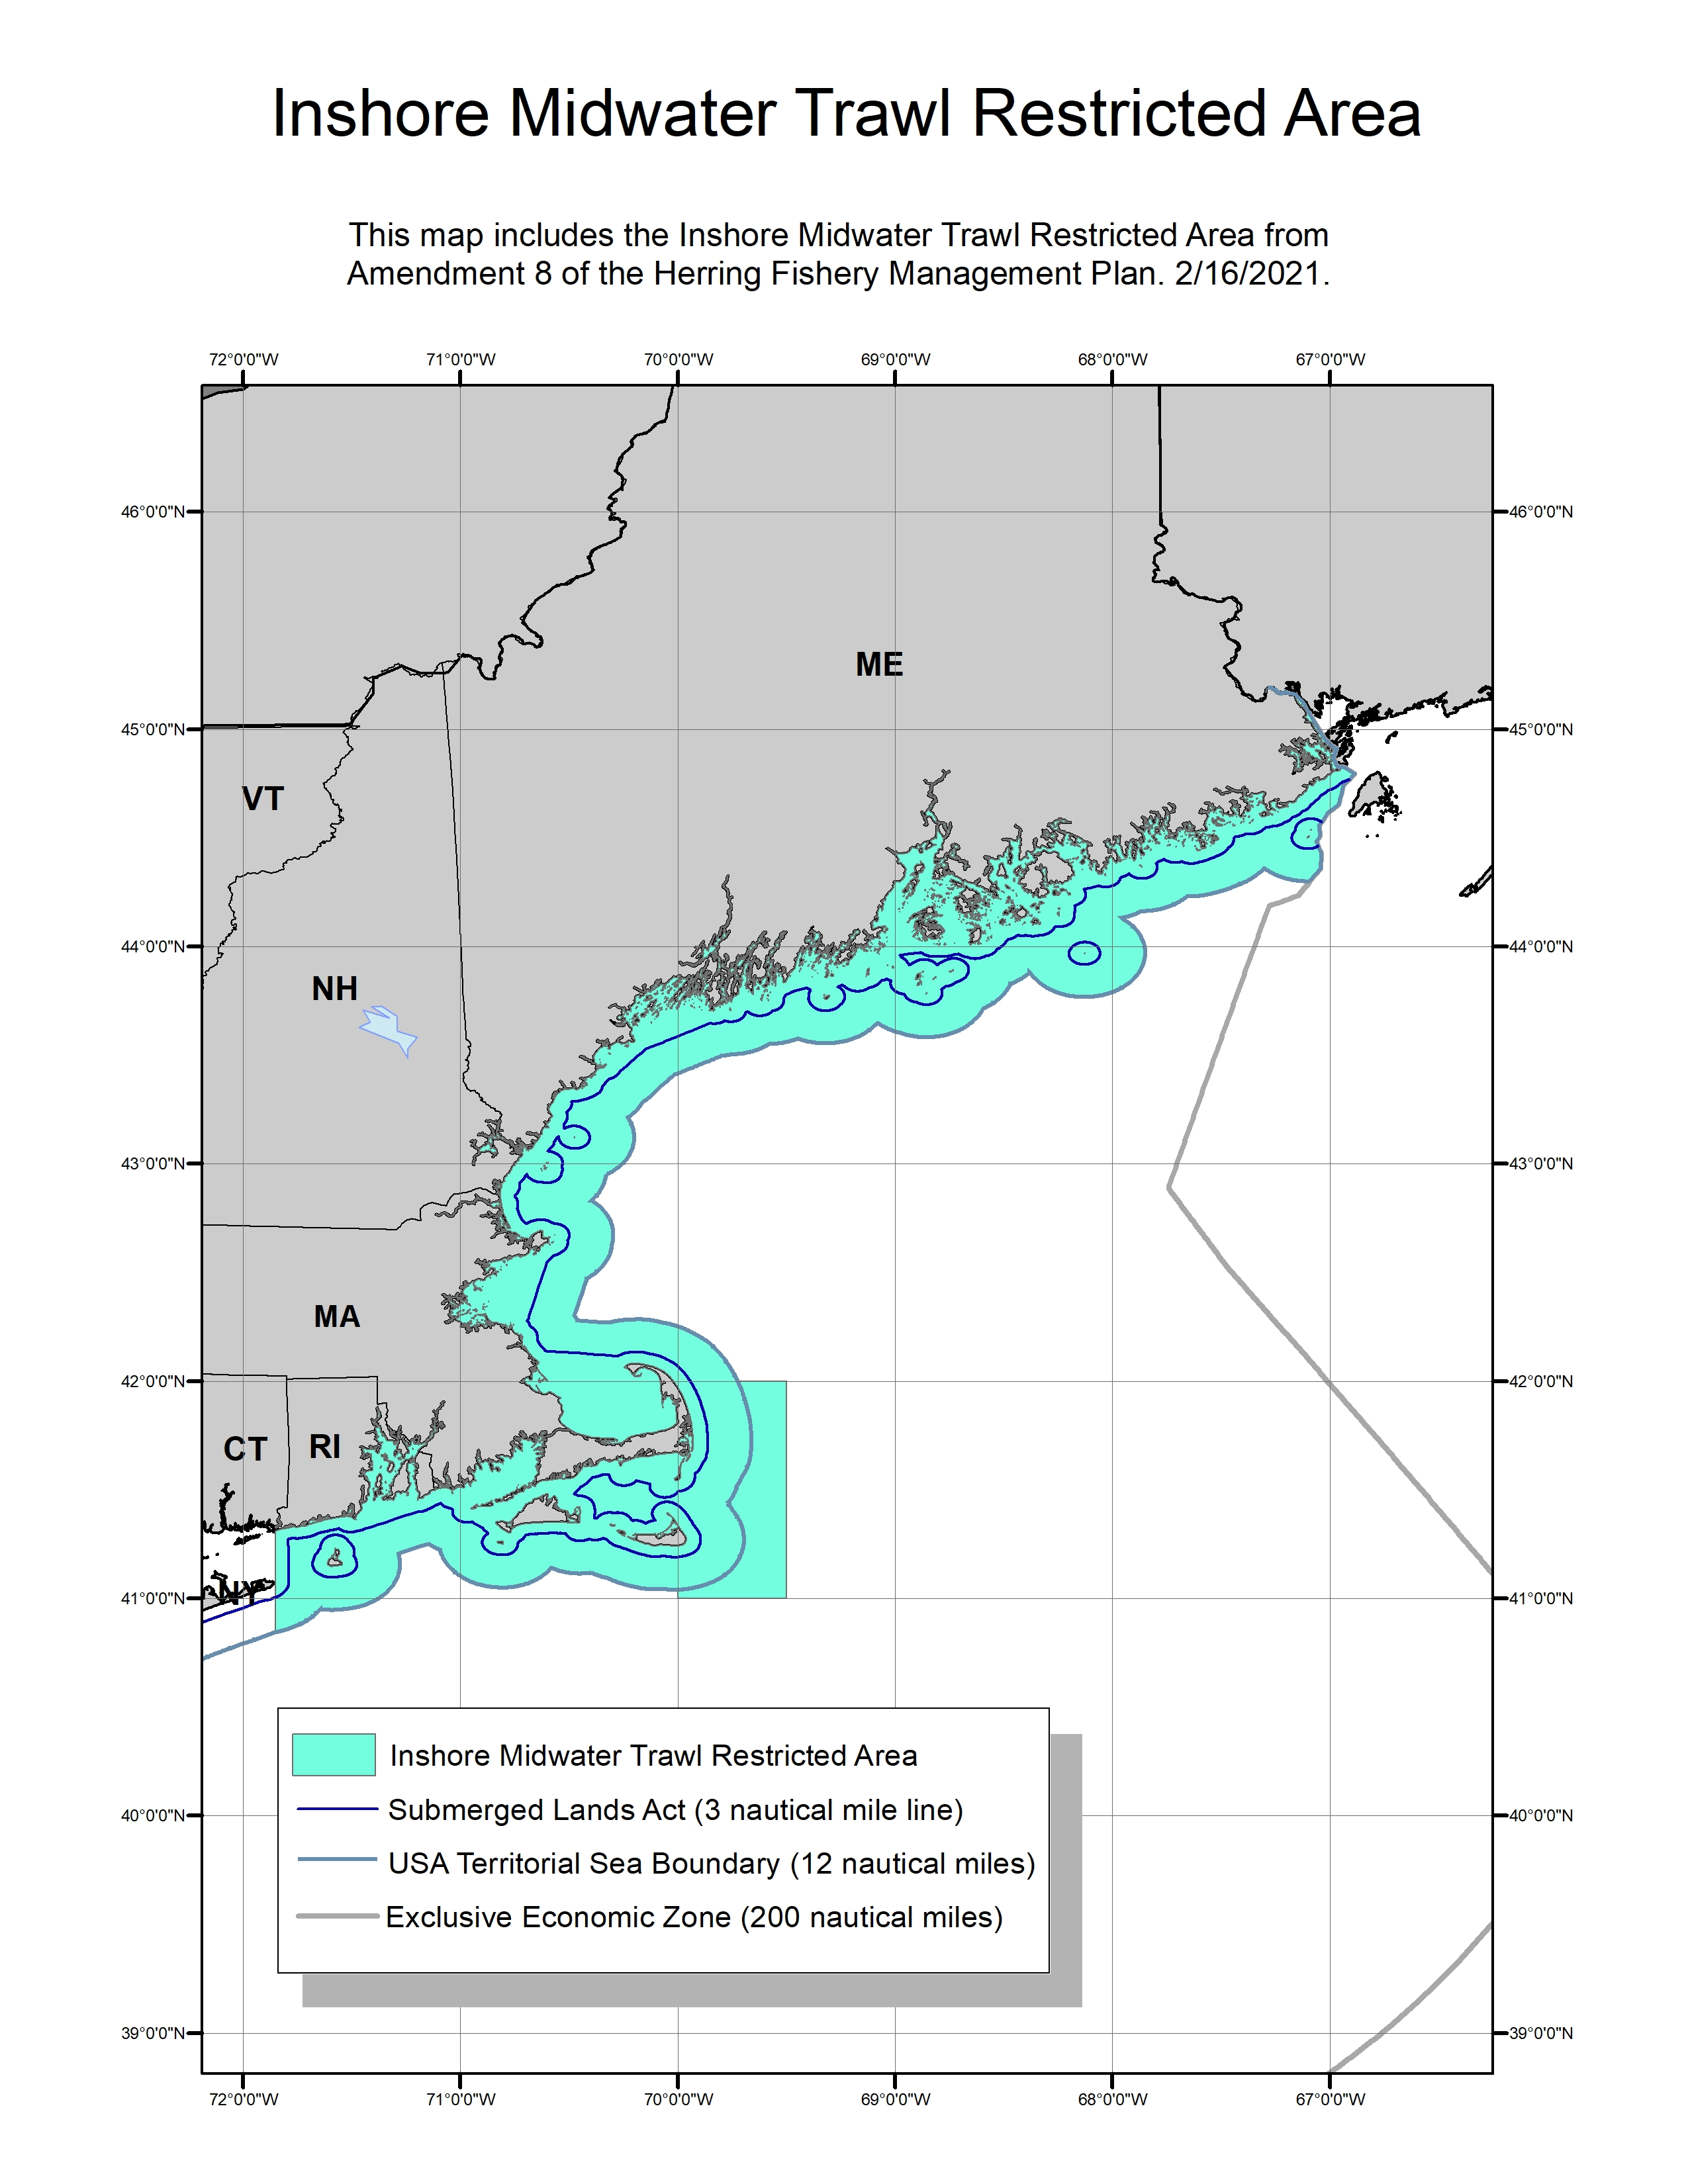 Inshore Midwater Trawl Restricted Area Map